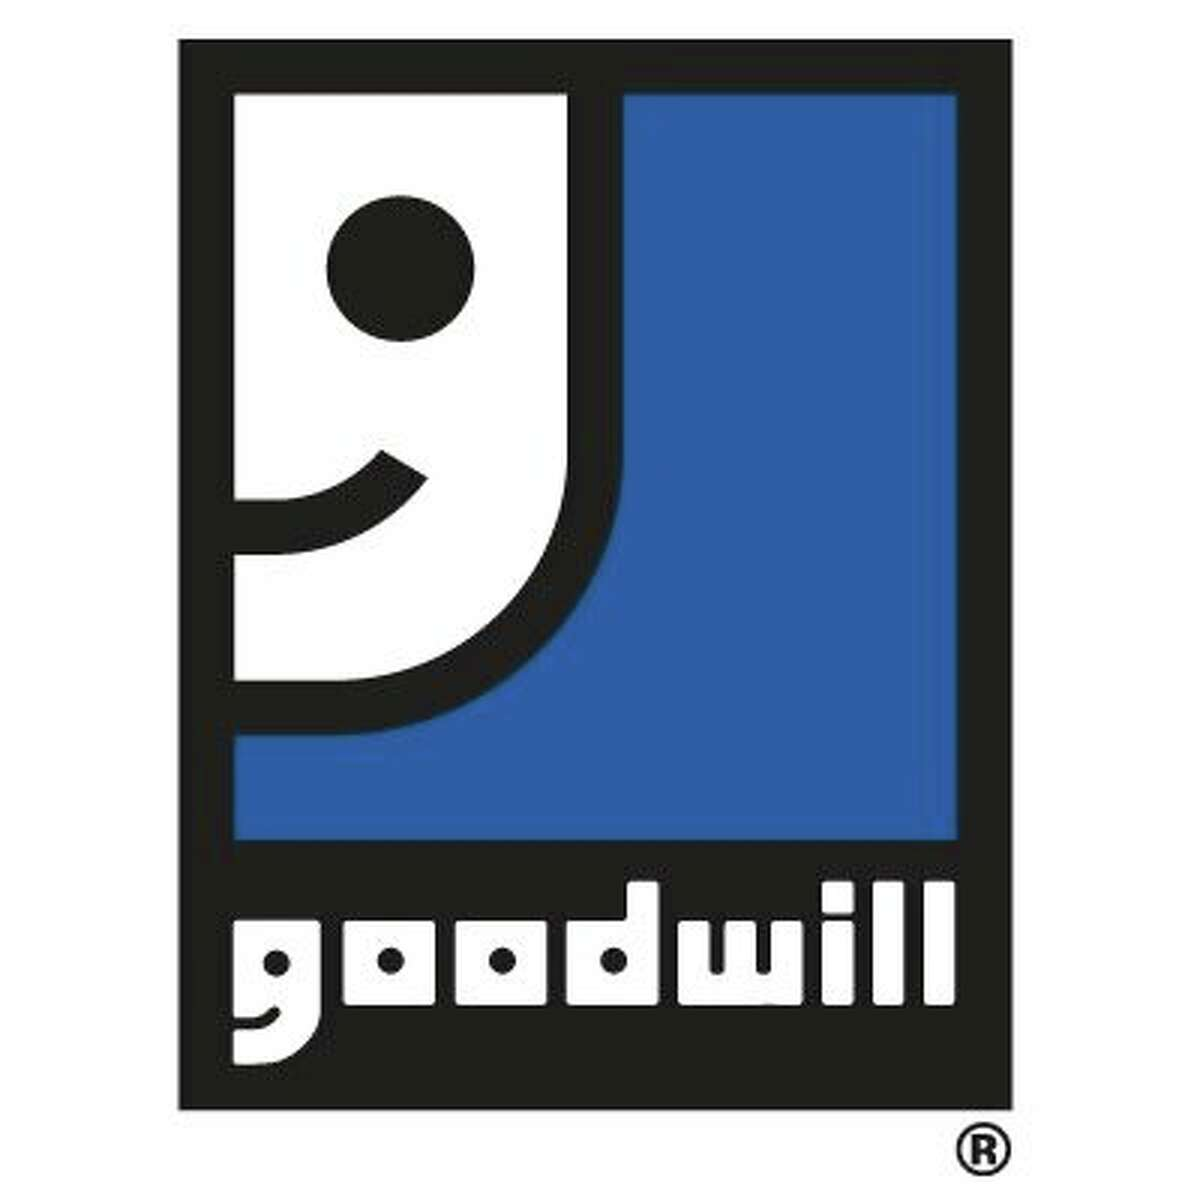 Goodwill San Antonio plans to open a new store with a drive-thru donation station Monday, barring rain, a spokesperson said. The store is located at 10422 Potranco Road.